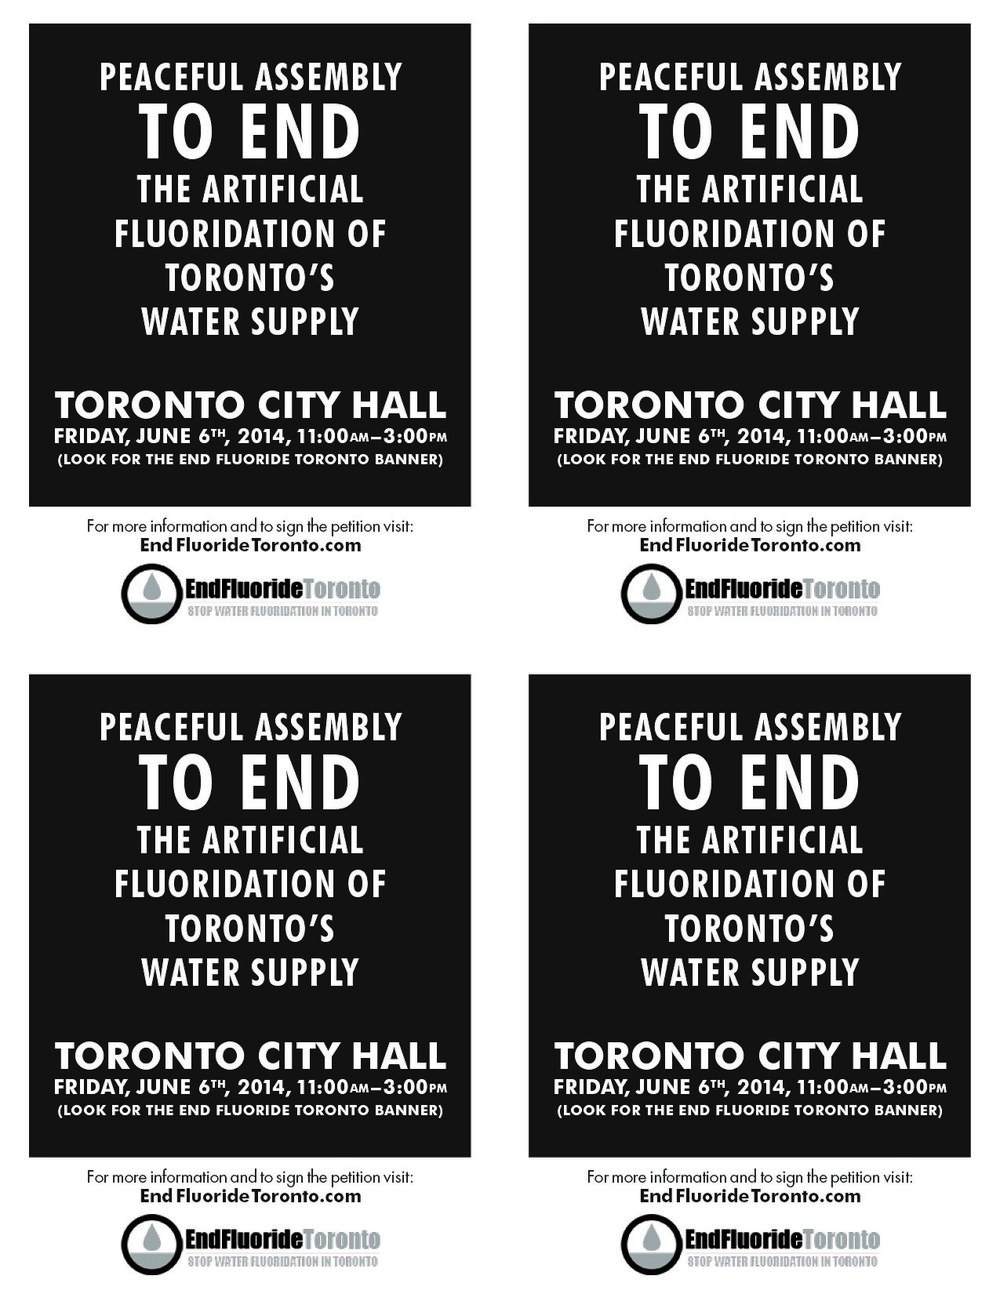 Front Page - Peaceful Assembly to End Artificial Water Fluoridation